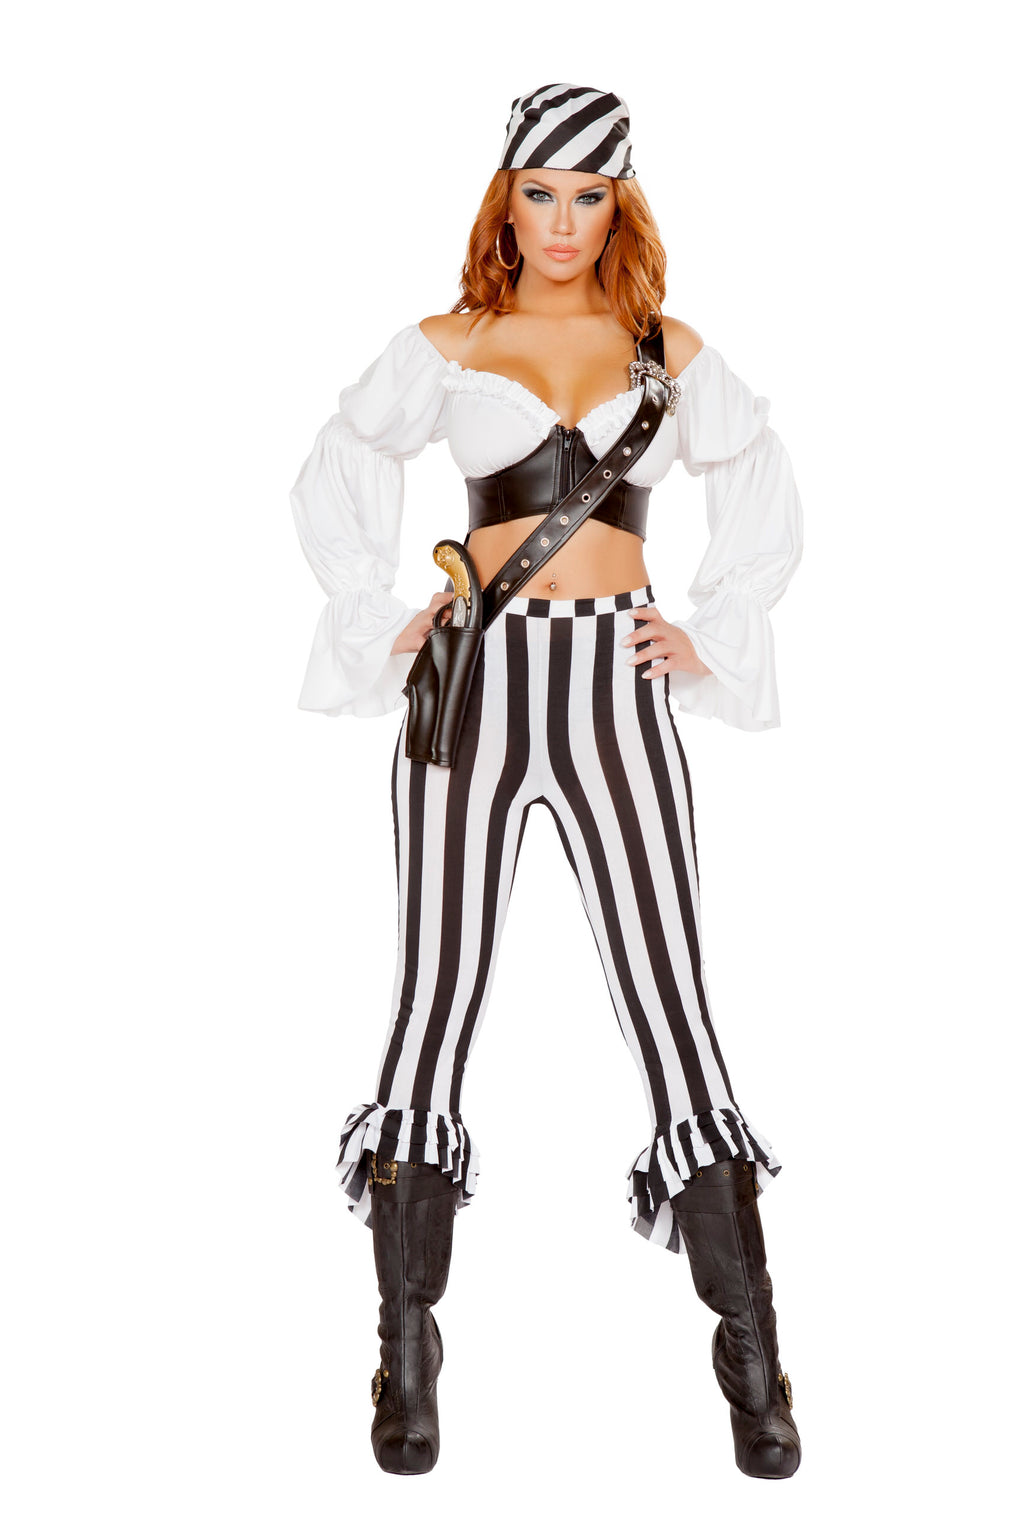 4-Piece-Pirate-Crop-Top-&-Striped-Pants-w/-Accessories-Party-Costume